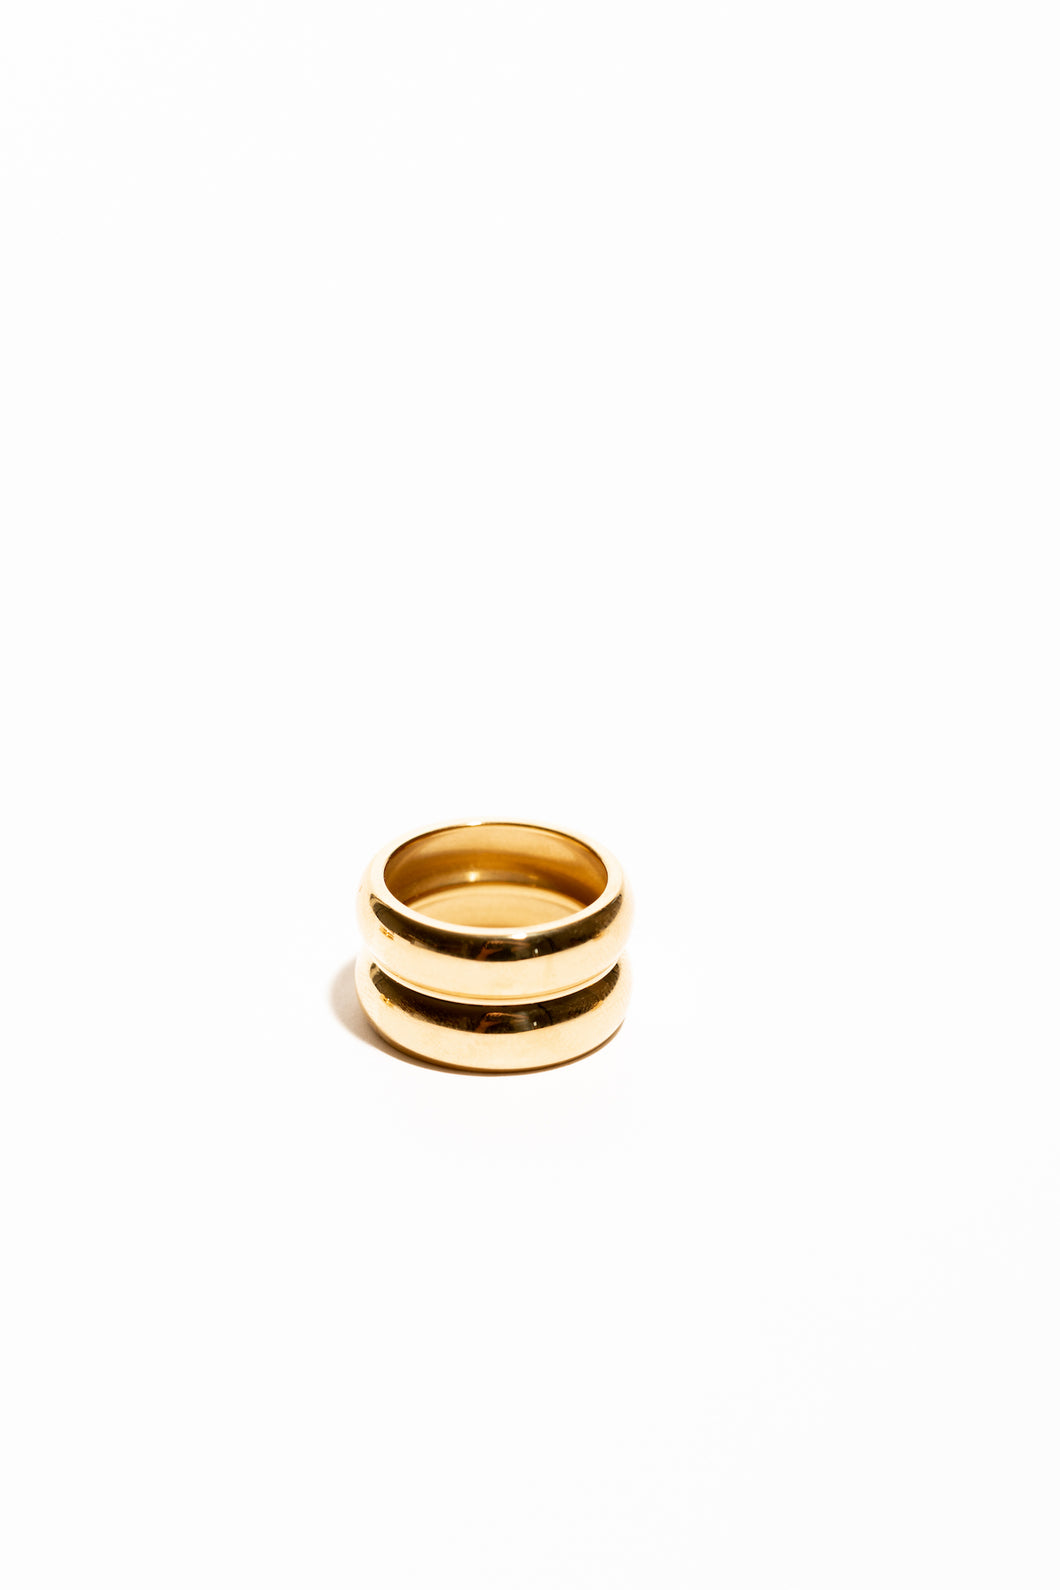 Everything Nice Thick Double Stack Ring - Gold